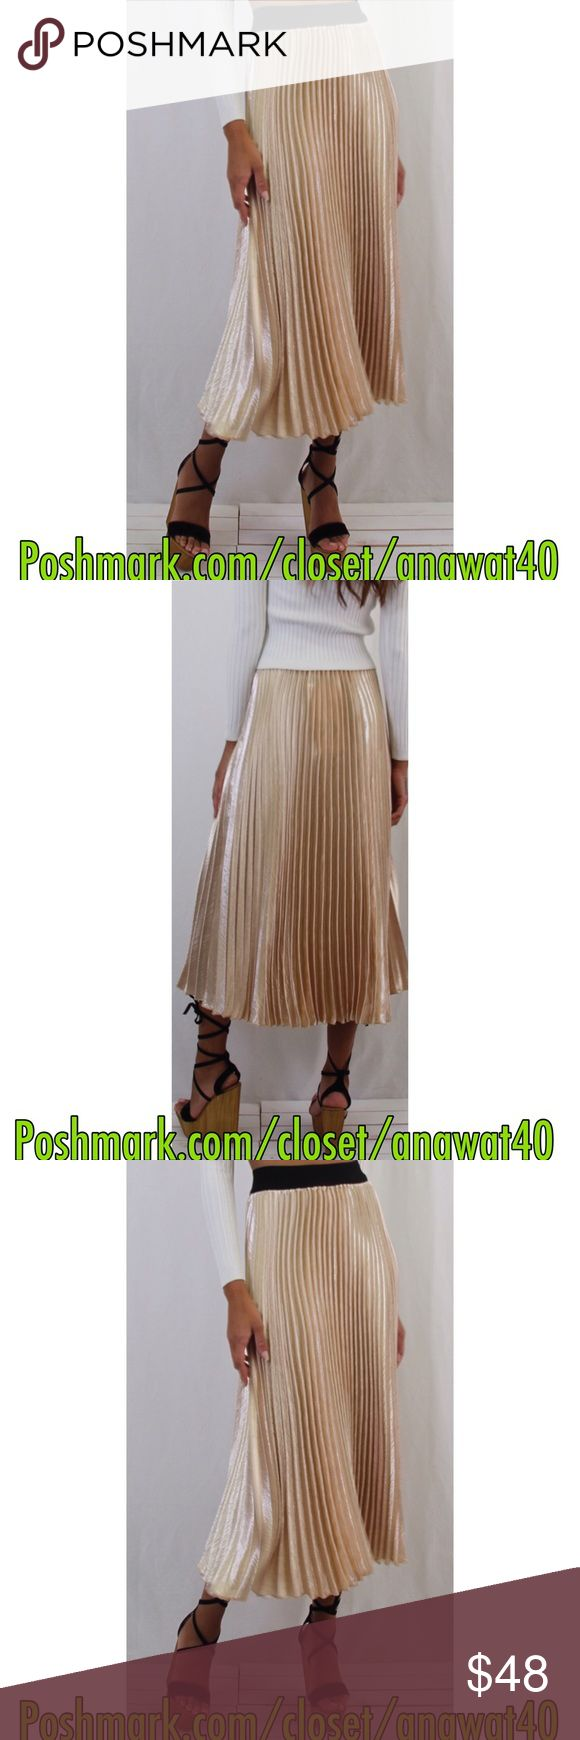 "Gold Velvet Keepsake Skirt Gold Velvet Keepsake Skirt  Velvet look details add a pretty touch to this midi skirt. Sitting high on the waist, the full skirt comes in a pleated texture. Pair with an oversized sweatshirt and trainers for edgy chic. 92% Polyester, 8% Elastane  * 95% polyester, 5% spandex * Hand wash cold * Model is in size S * Model is 5'9"", bust 34"", waist 25"", hips 35"" Alpha Omega Skirts Midi"